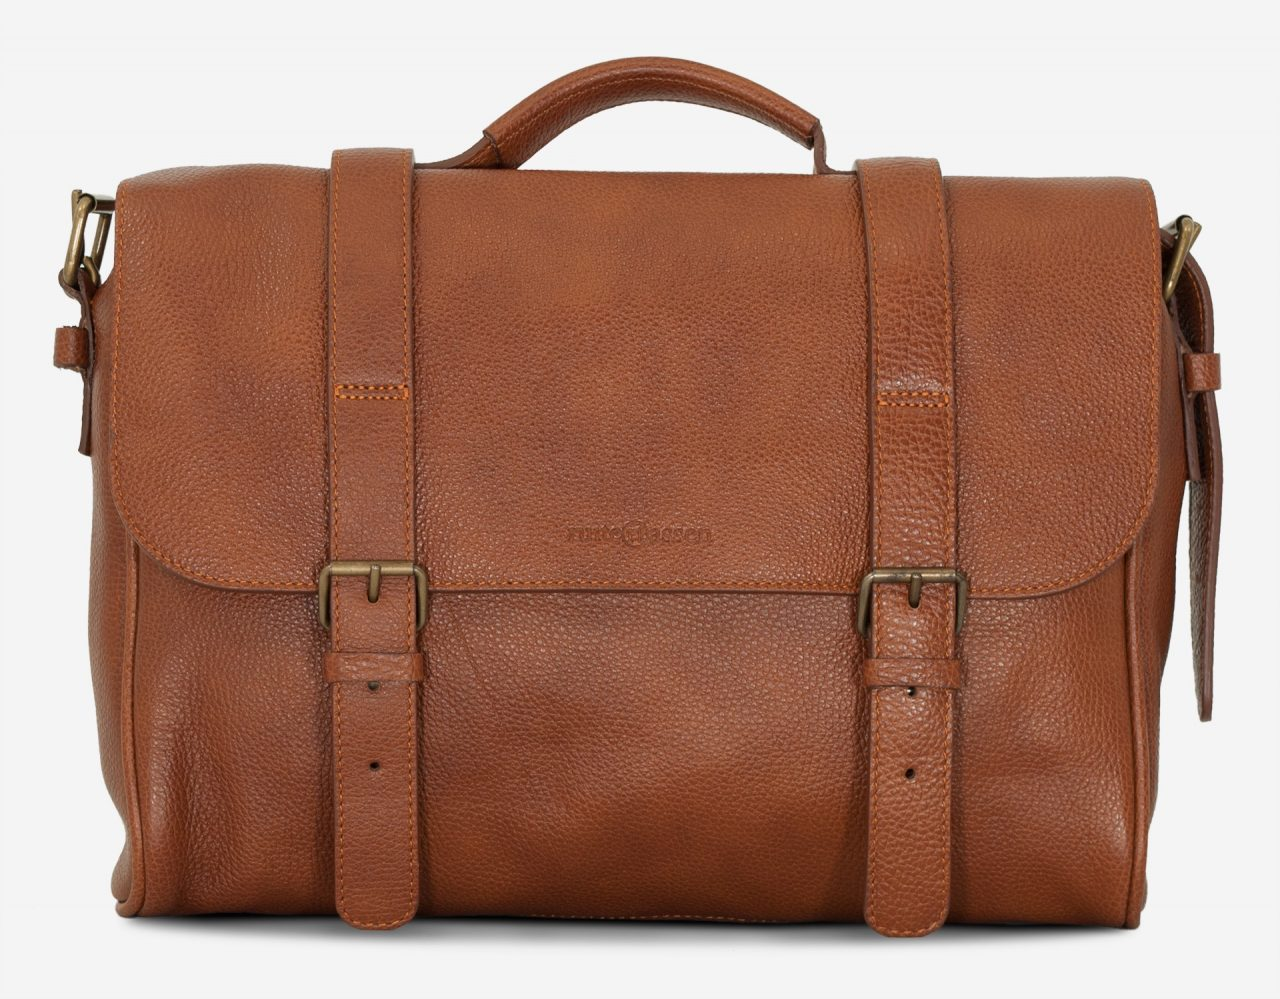 Front of the soft brown leather briefcase bag.